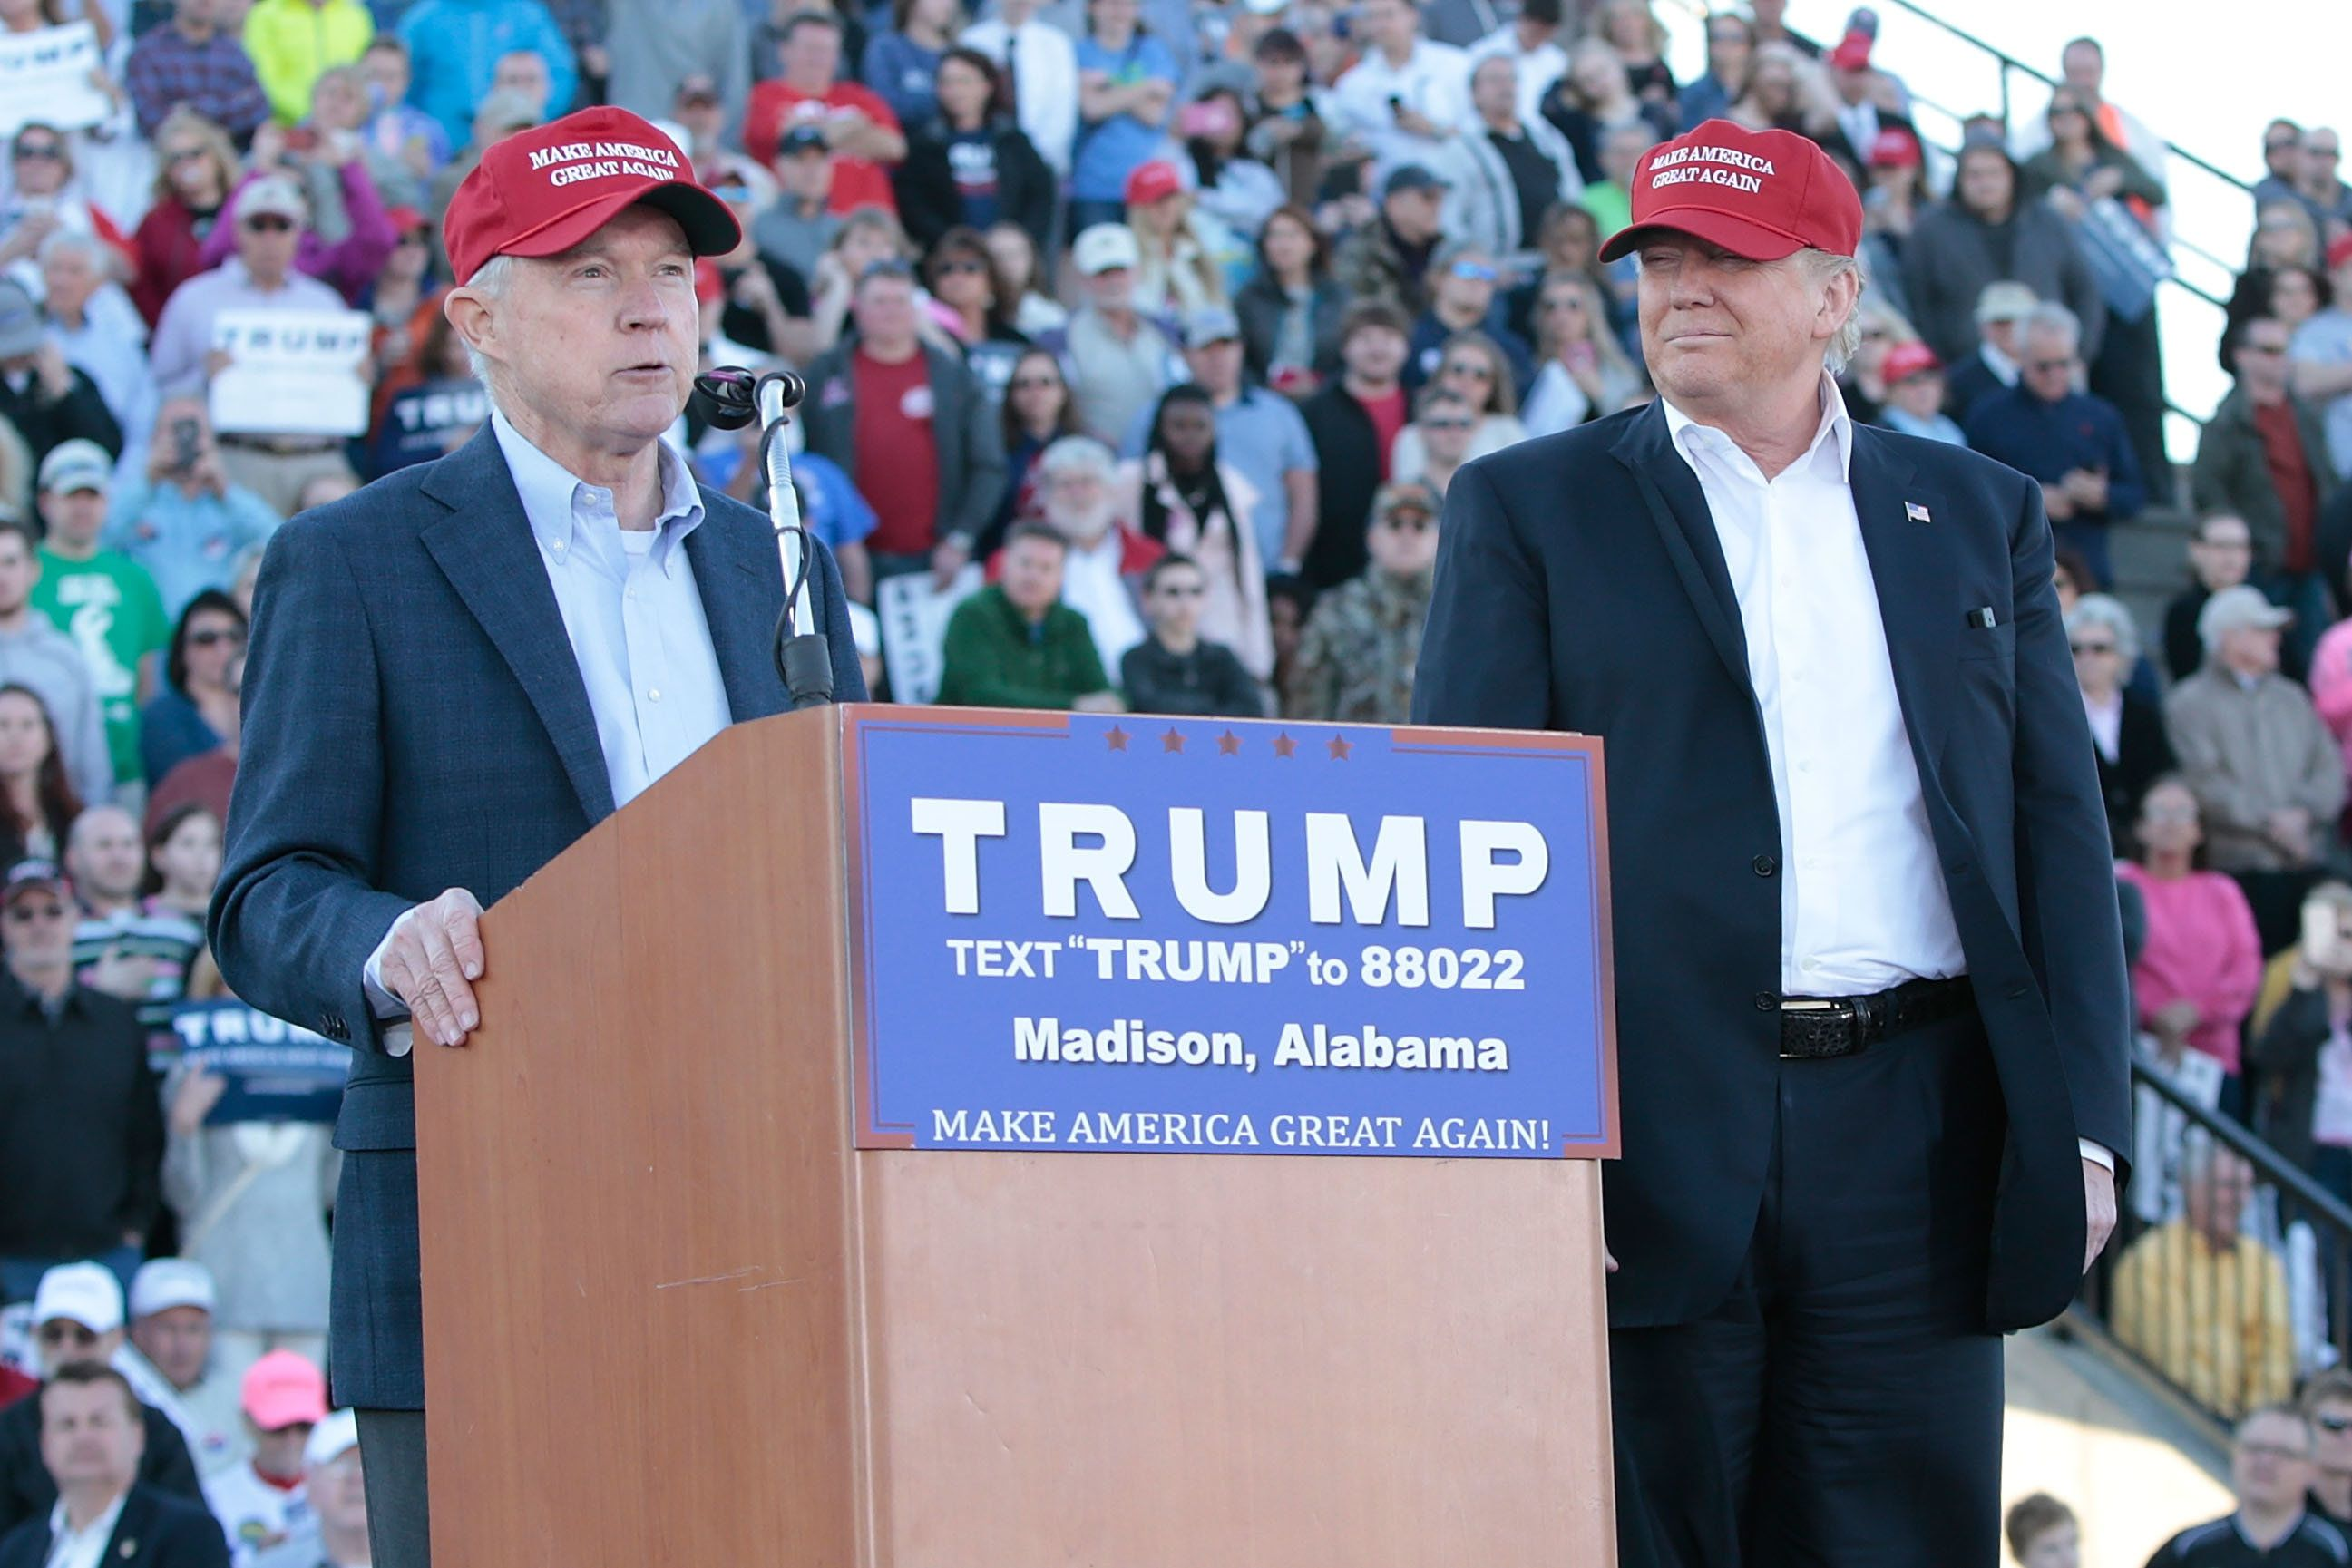 MADISON, AL - FEBRUARY 28:  United States Senator Jeff Sessions, R-Alabama, beomes the first Senator to endorse Donald Trump for President of the United States at Madison City Stadium on February 28, 2016 in Madison, Alabama.  (Photo by Taylor Hill/WireImage)